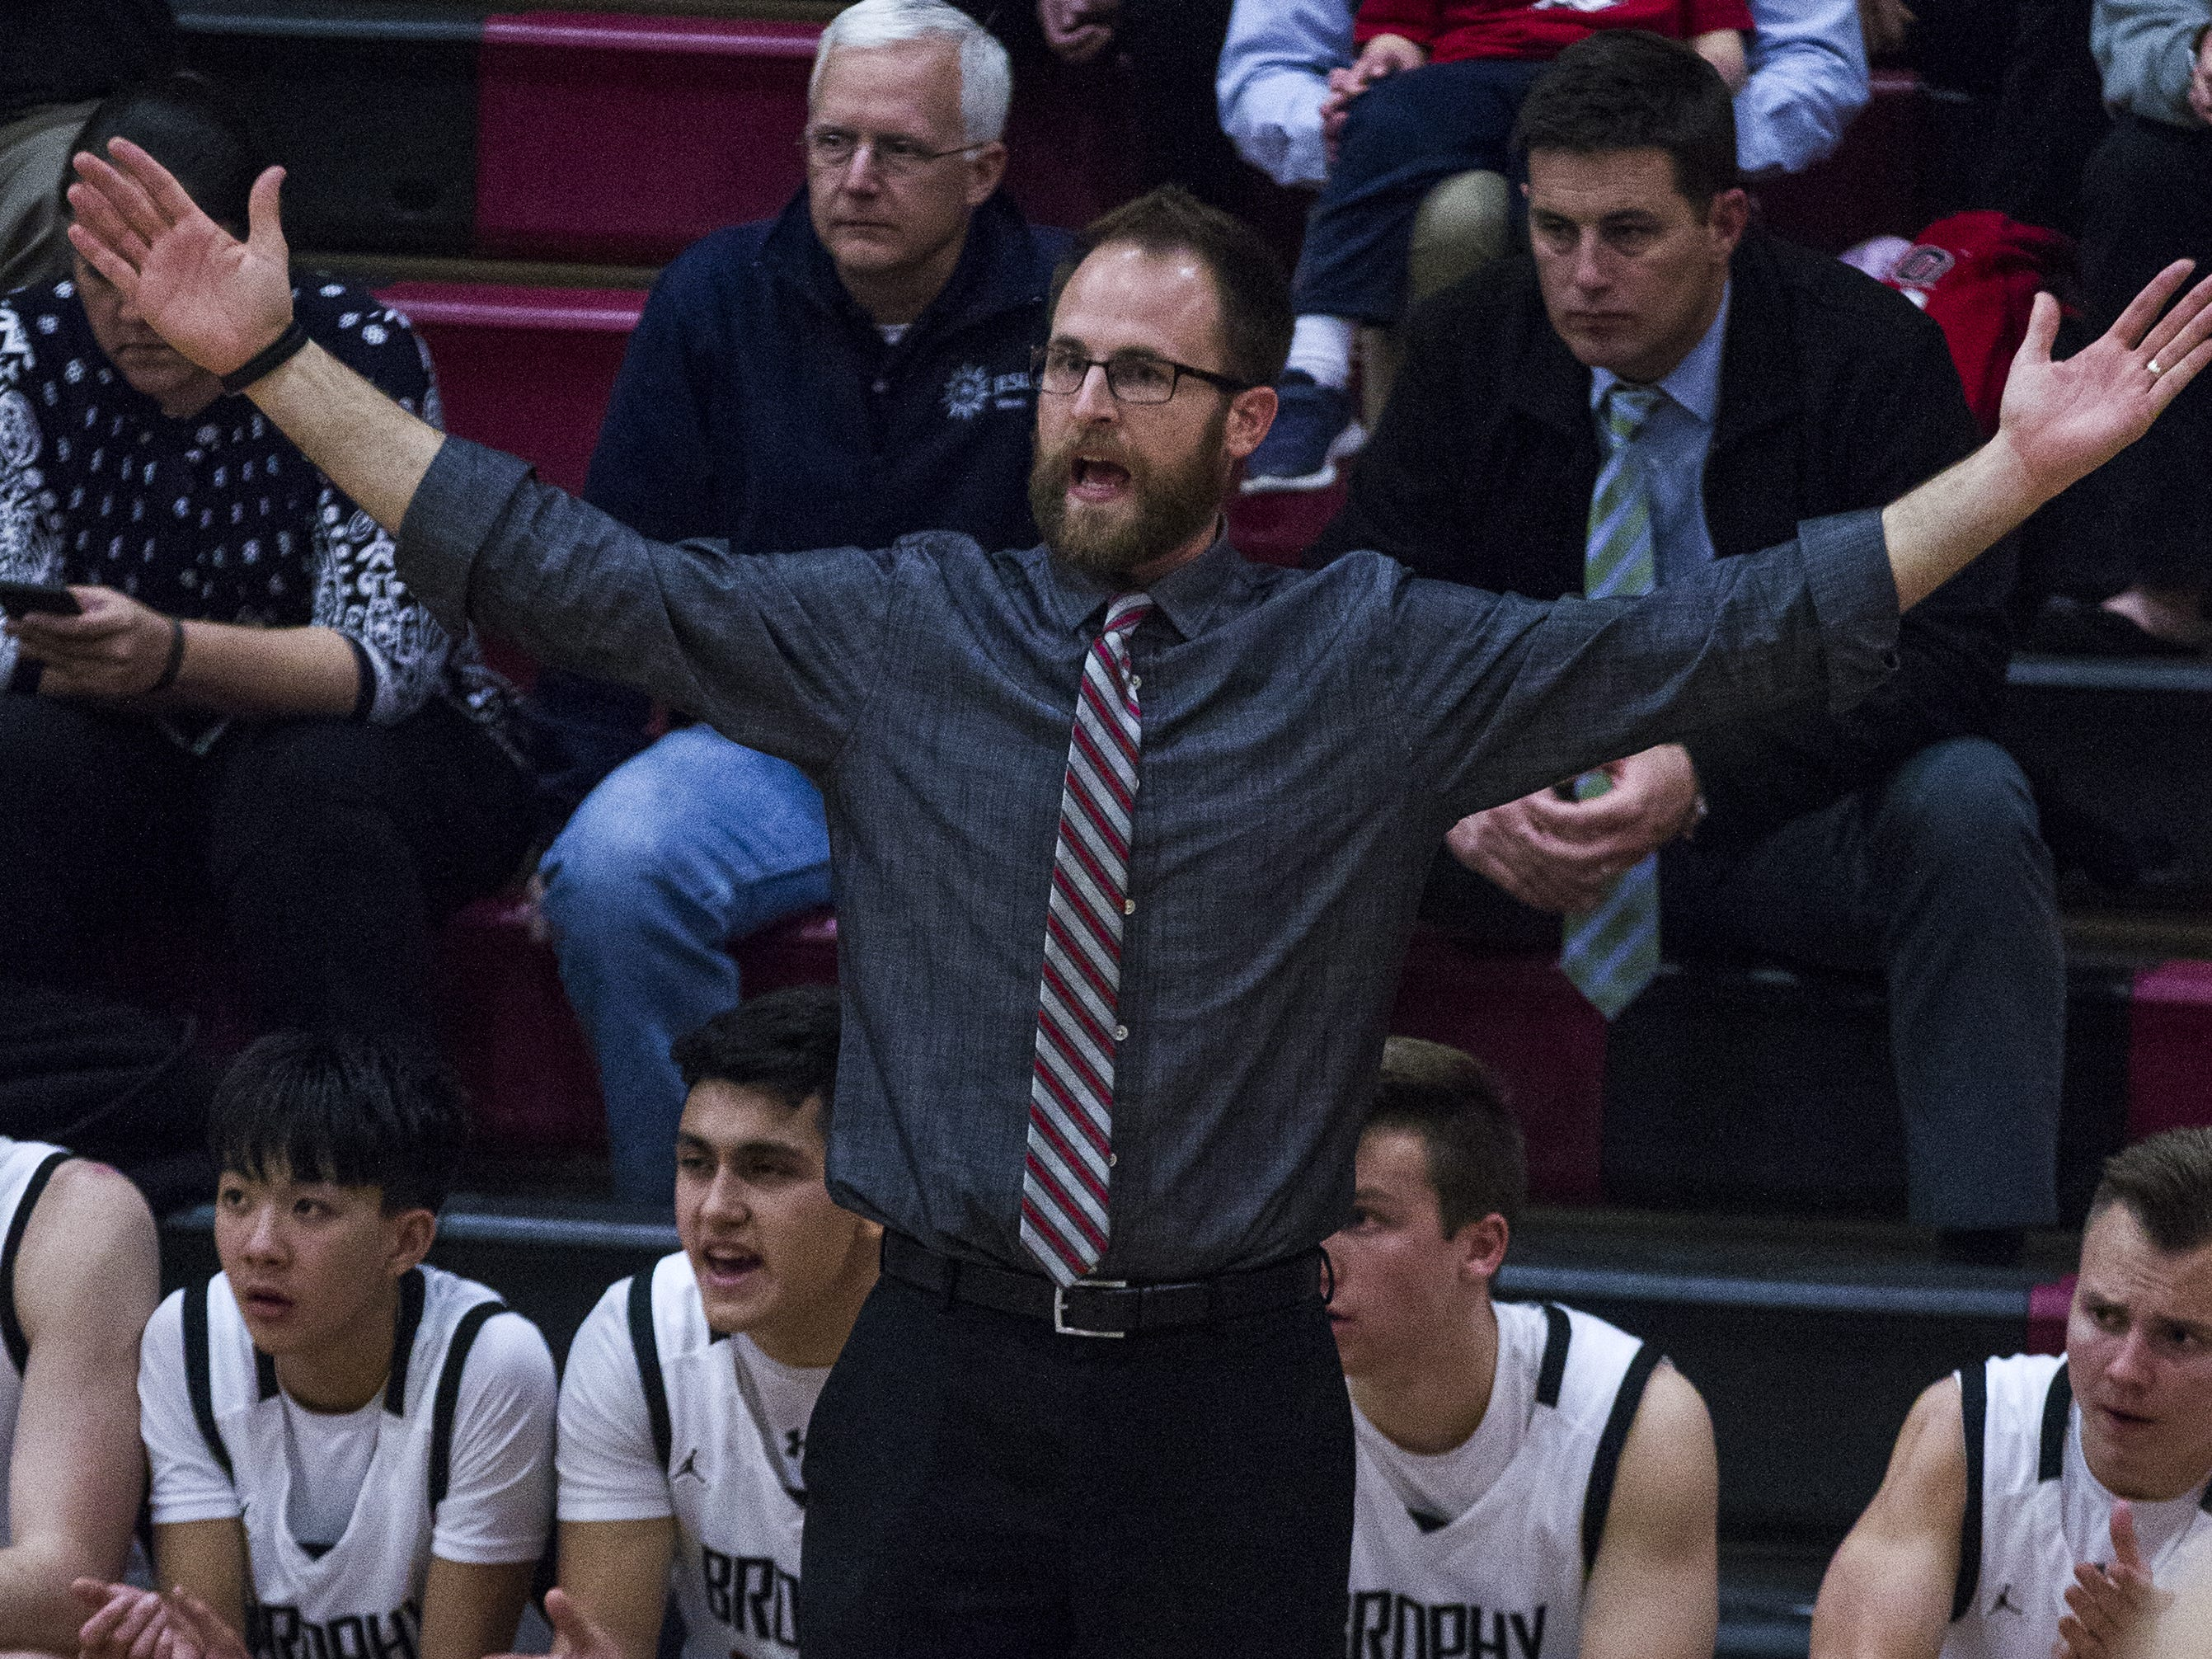 Brophy's coach Matt Hooten shouts out instructions to his team as they play Perry during in the first half of their game at Brophy High School in Phoenix, Tuesday, Jan. 8, 2019.